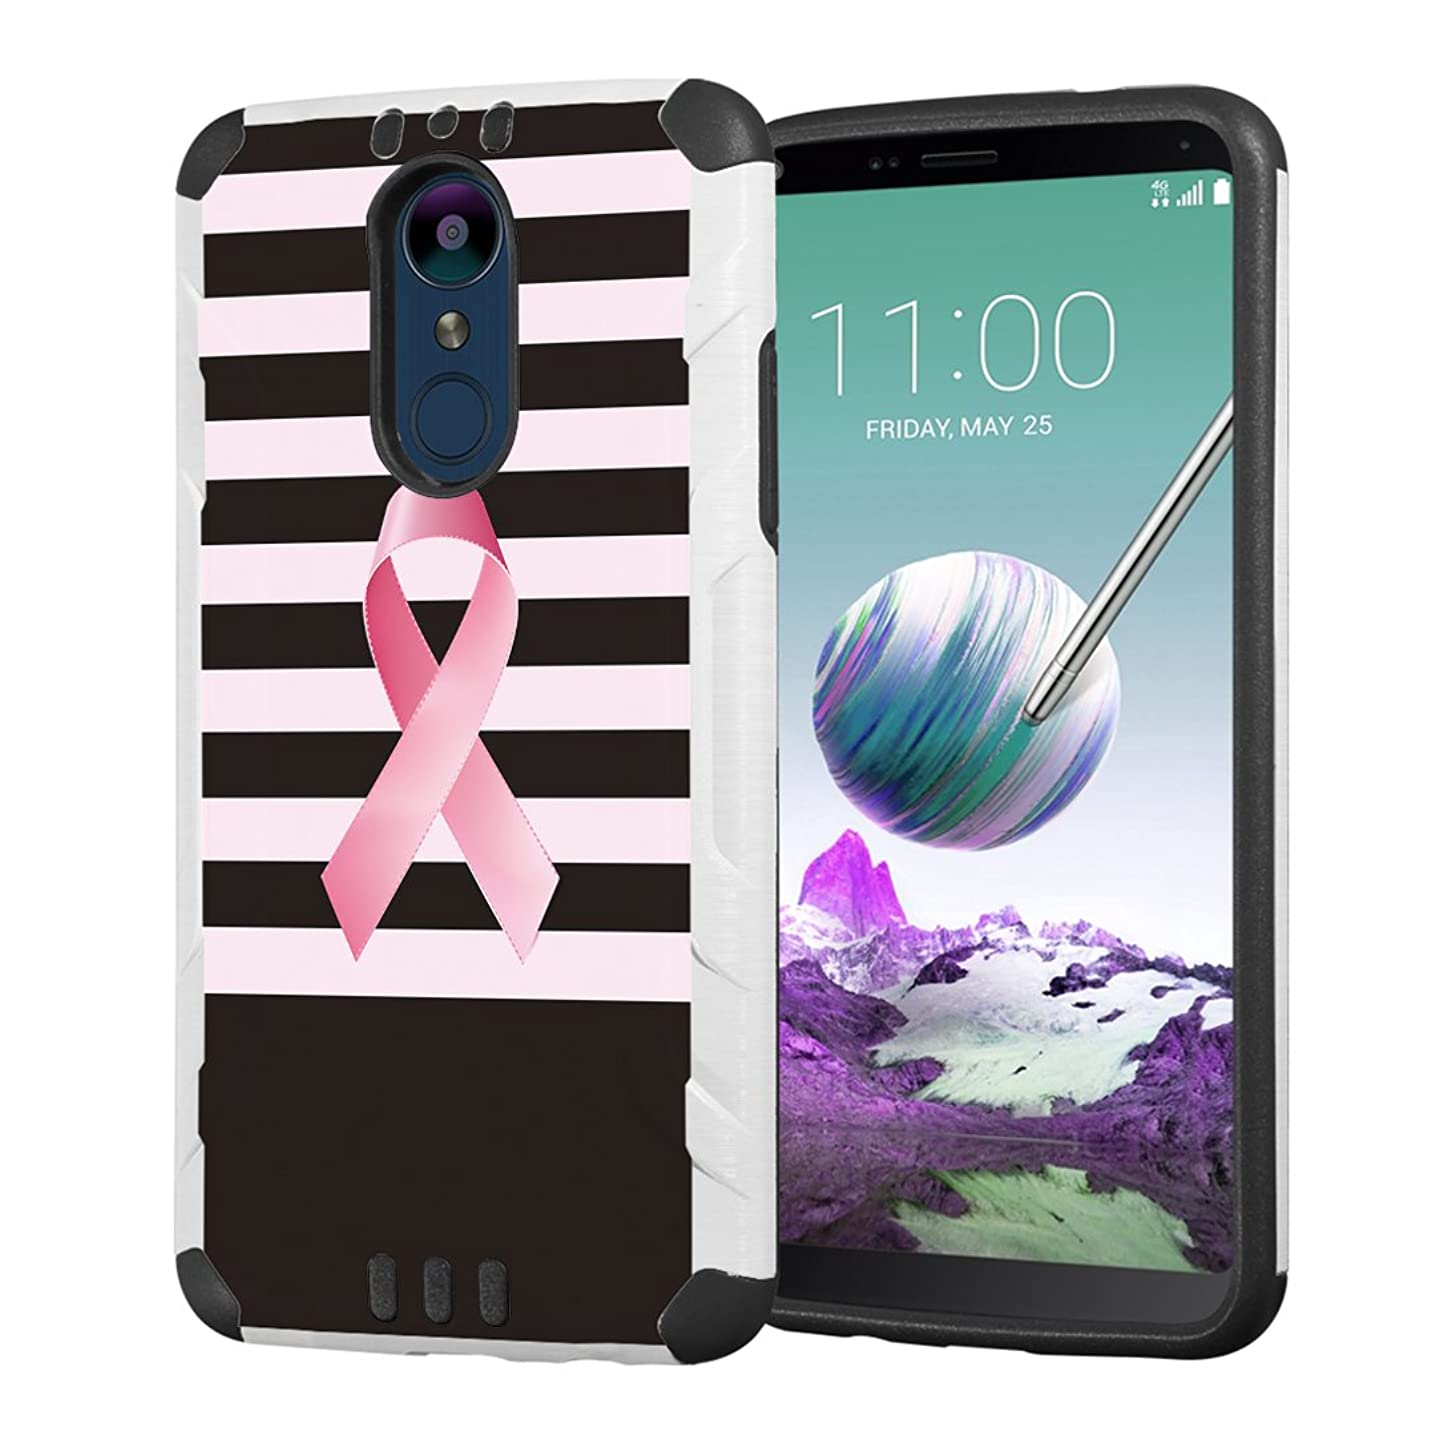 Moriko Case Compatible with LG Stylo 4 Plus, LG Stylo 4, LG Q Stylus [Drop Protection Hybrid Dual Layer Armor Protective Dual Layer Case White] for LG Stylo 4 - (Breast Cancer Awareness)